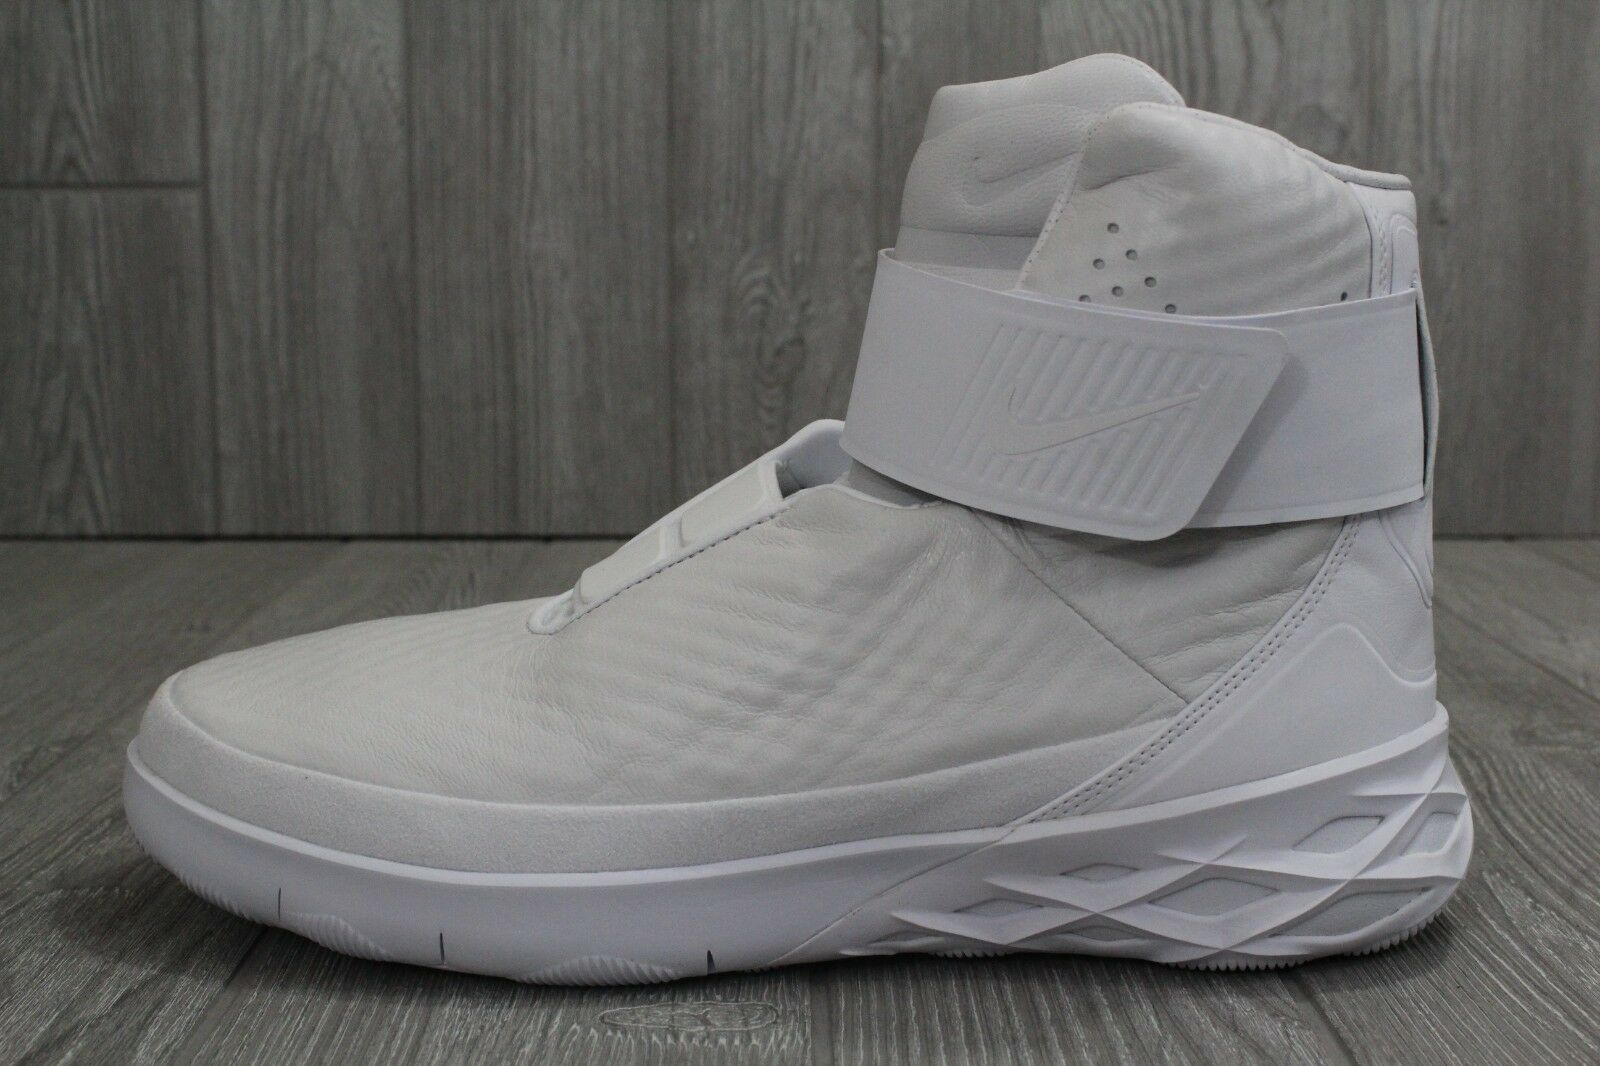 27 New Mens Nike Swoosh Hunter HNTR 832820 101 White Yeezy Leather Shoes 11 11.5